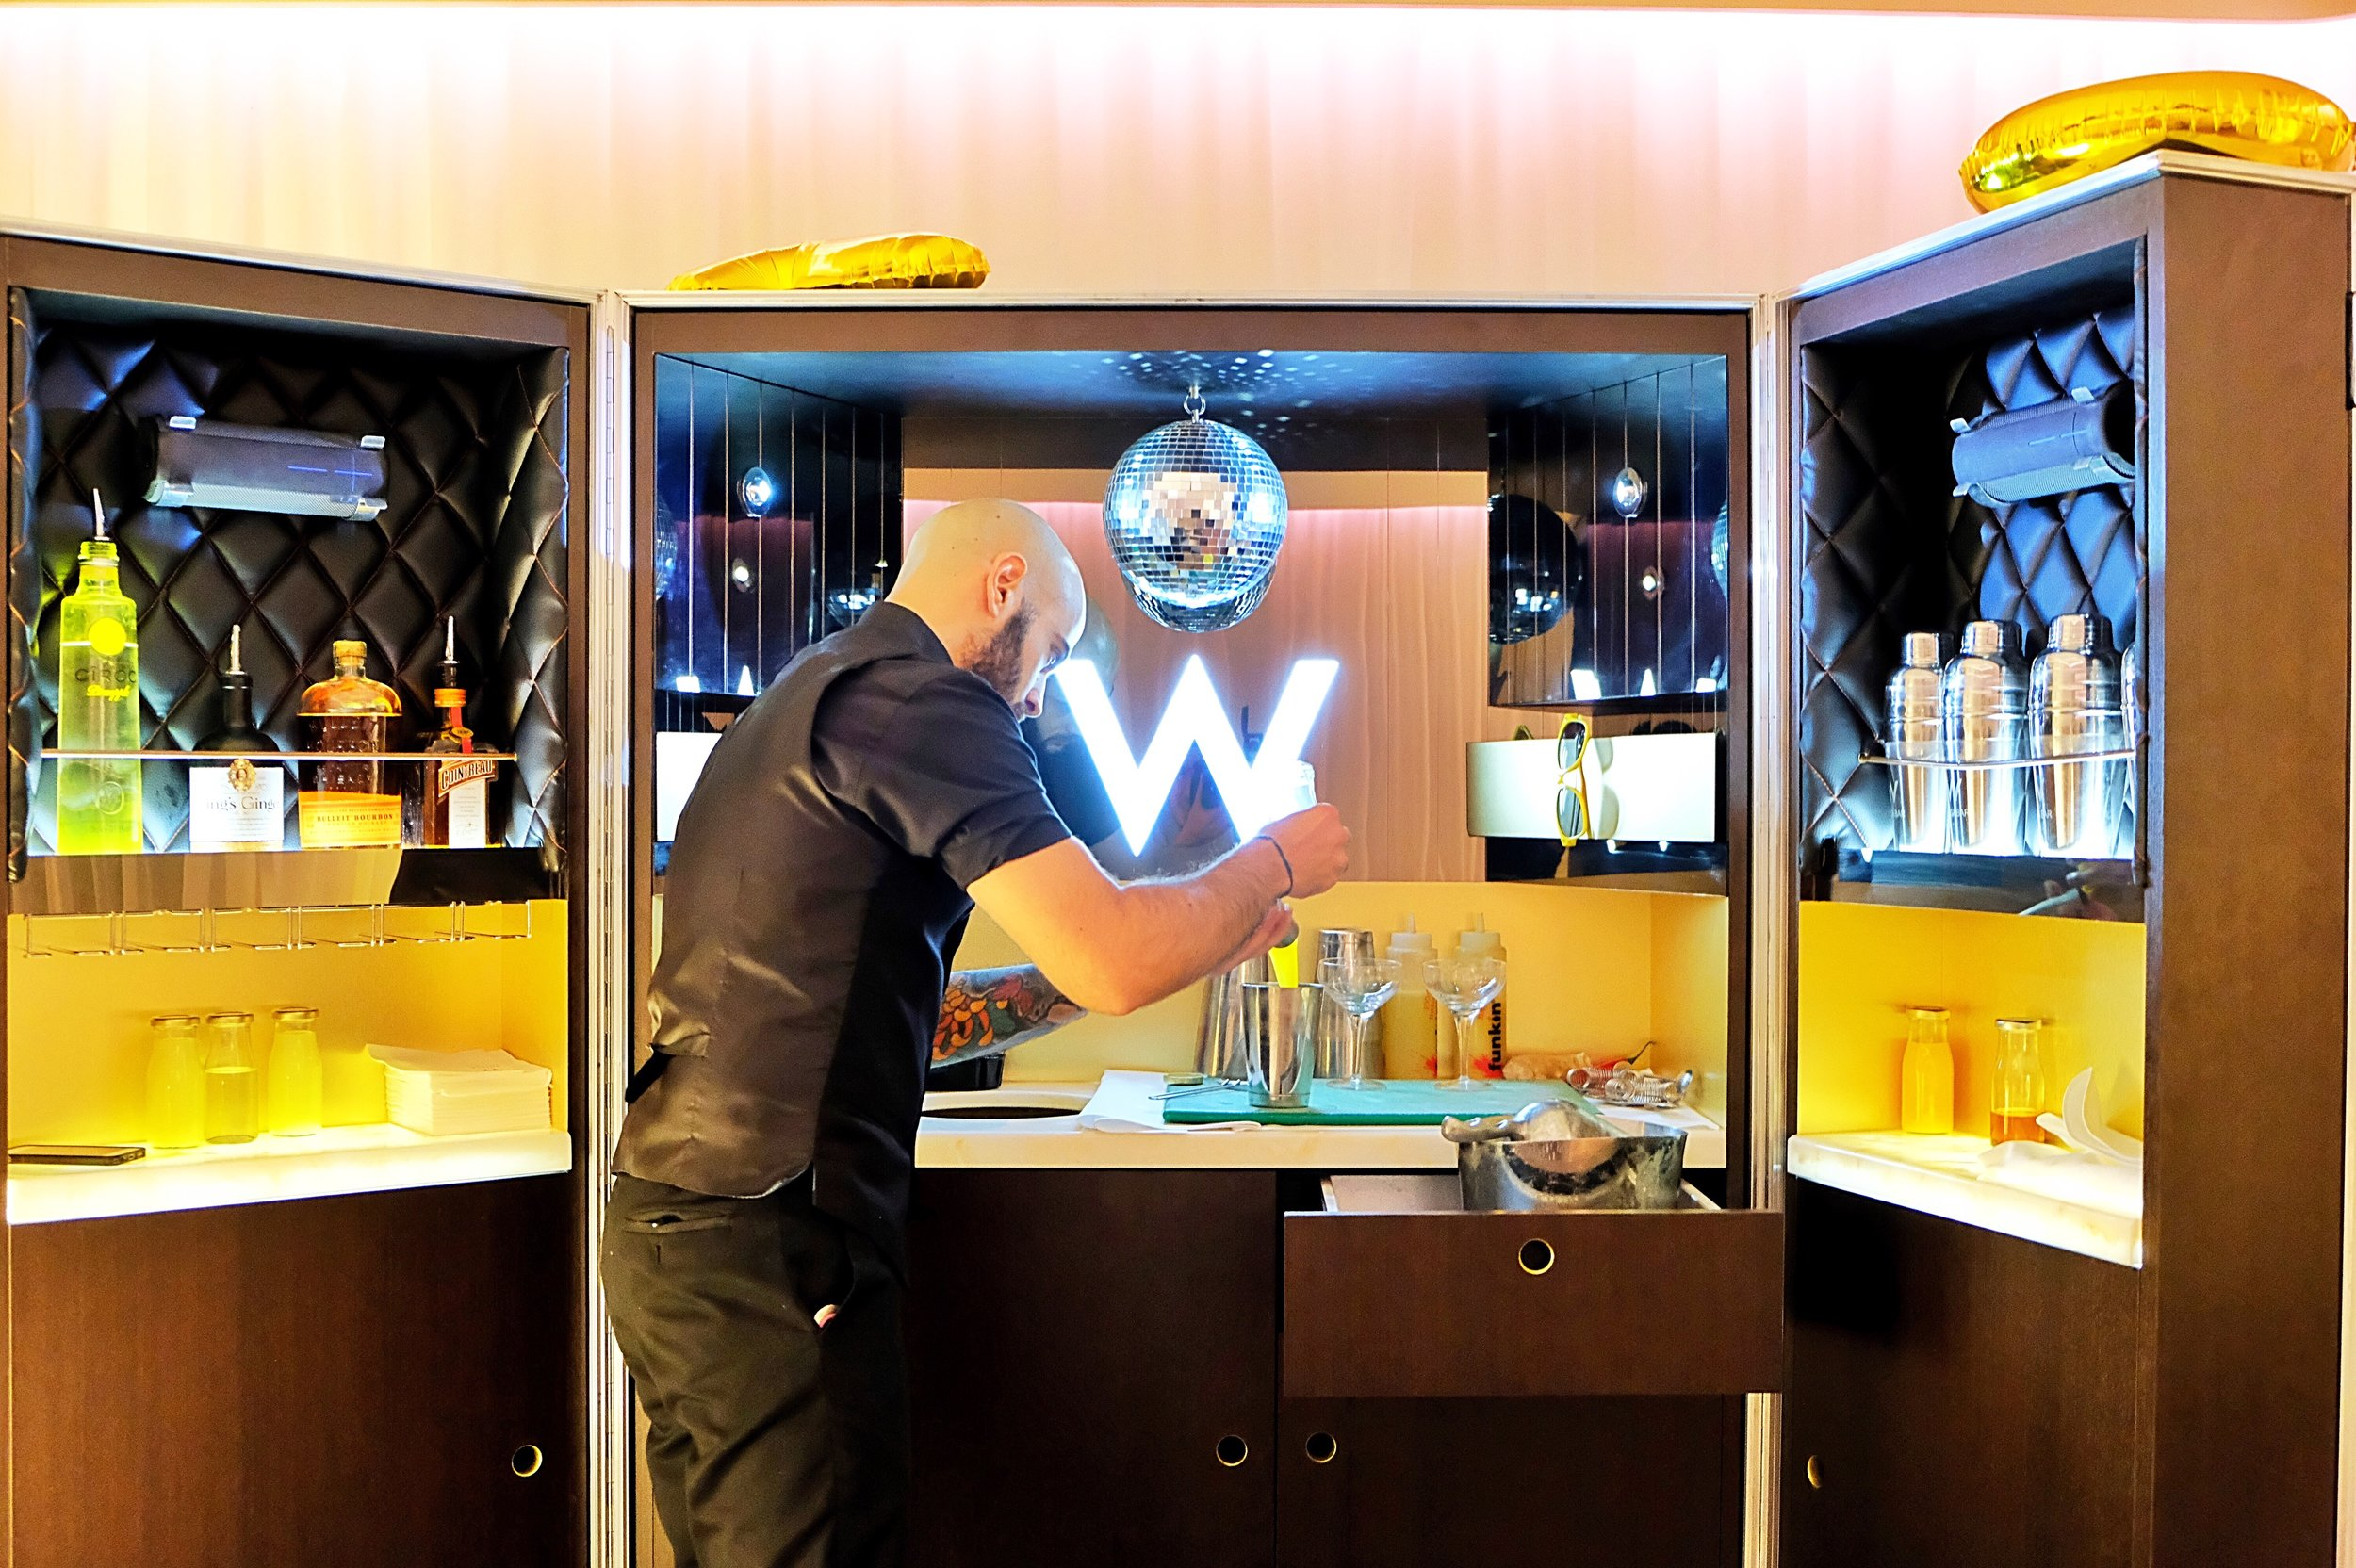 The Mega Bar experience comes with your personal mixologist. Here is Giulio making magic happen. Follow him on insta at @giuliovaldiserri